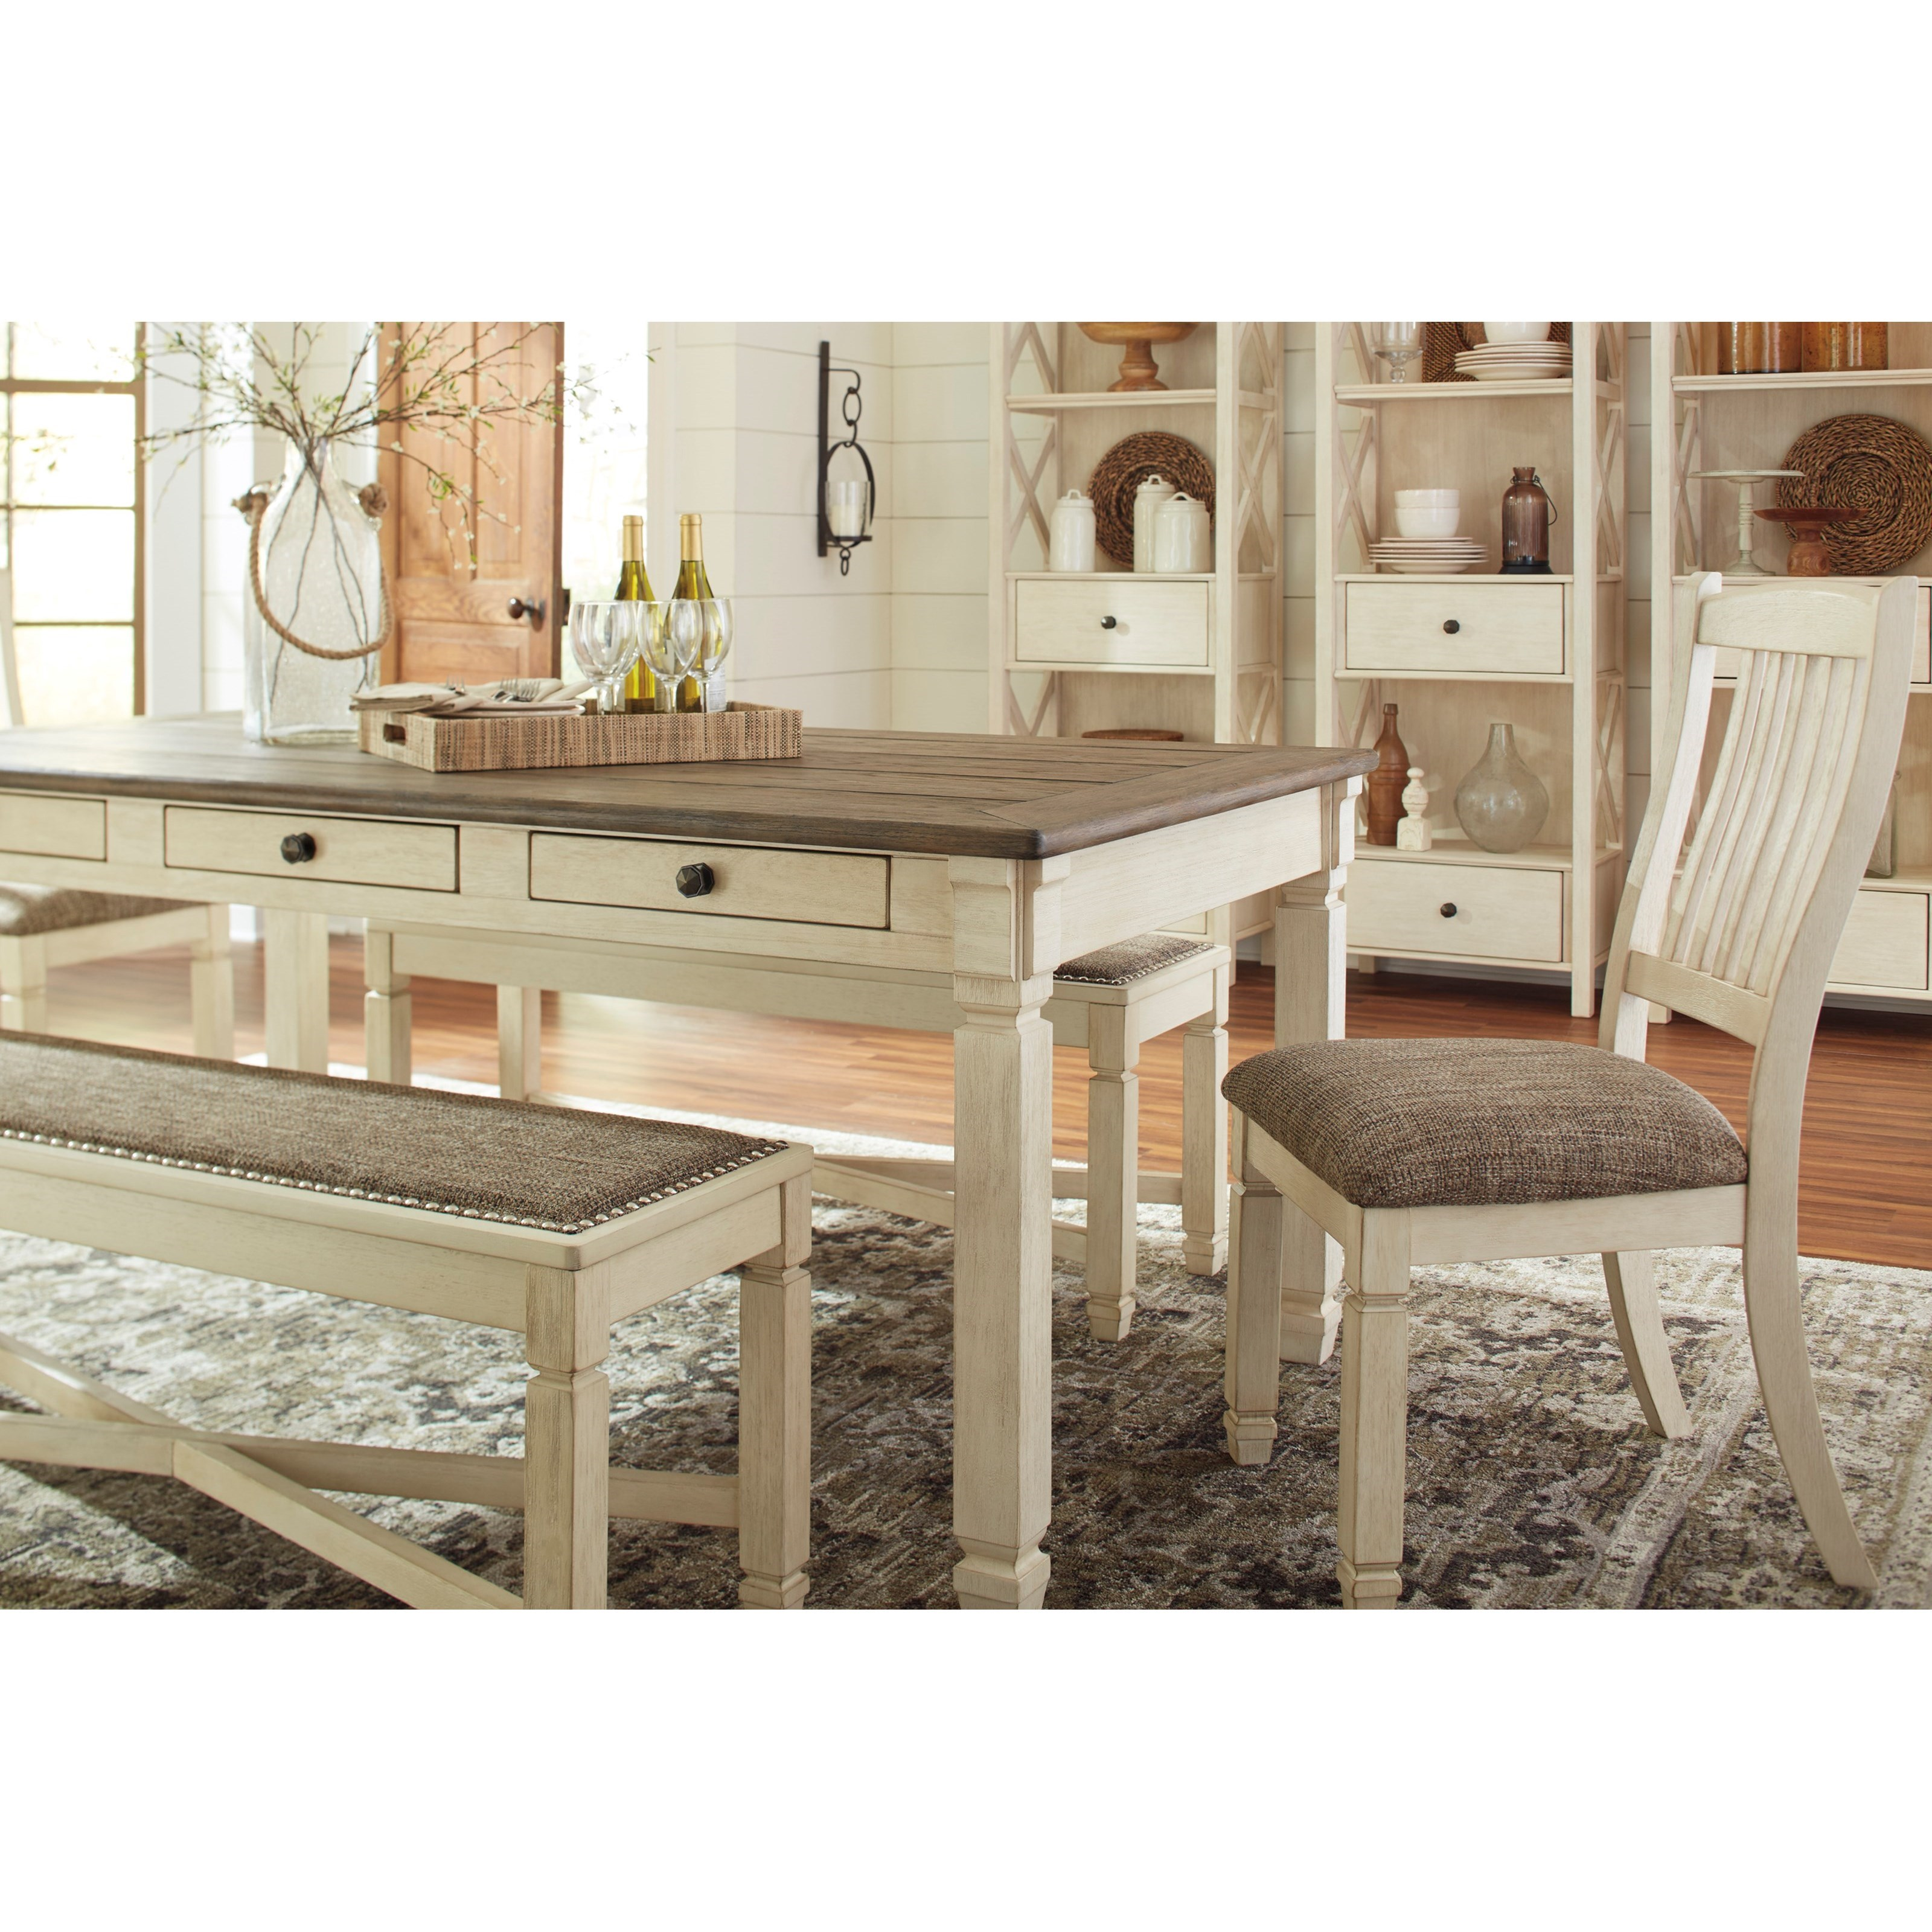 Signature Design By Ashley Bolanburg D647 25 Relaxed